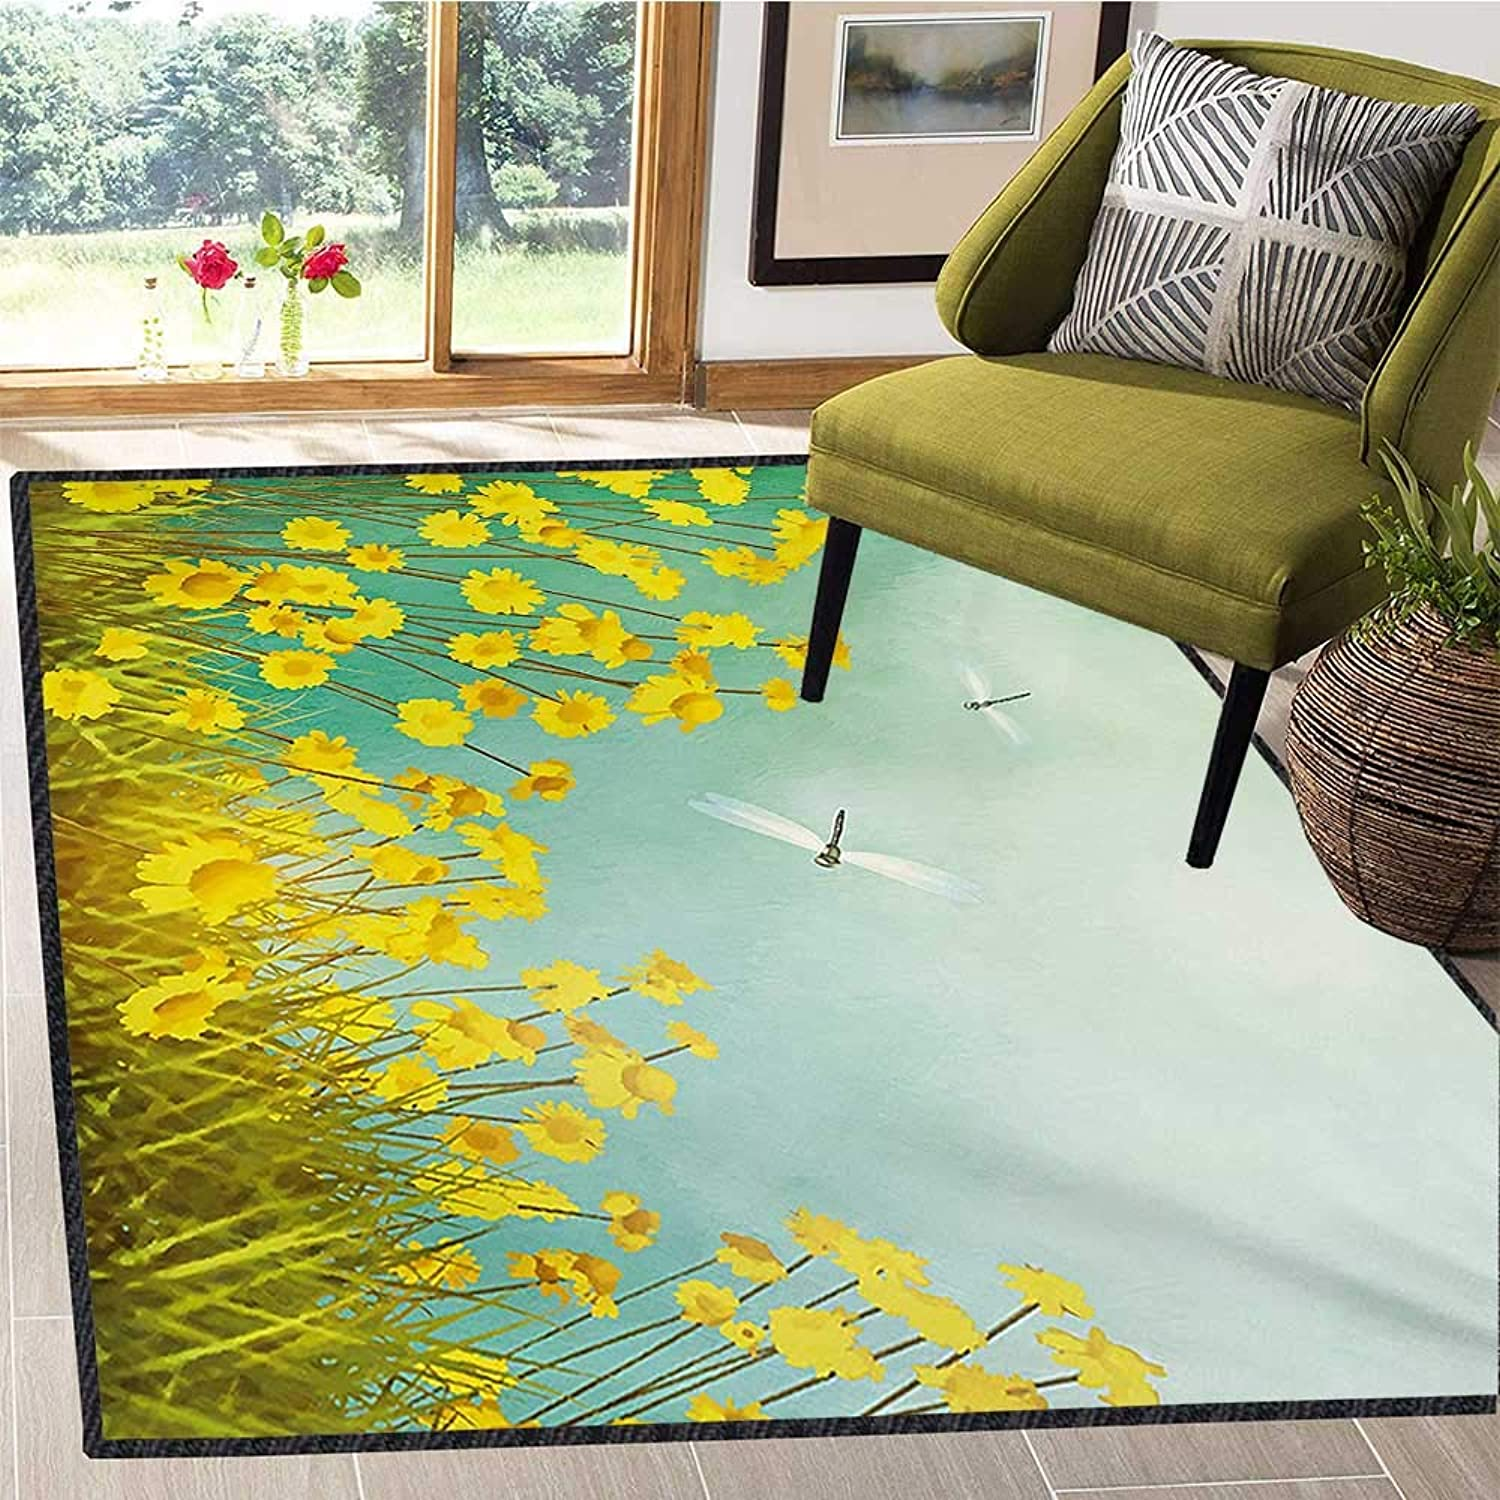 Dragonfly, Door Mats for Inside, Flourishing Artistic Landscape with Daisies on Grass and Dragonflies in The Air, Door Mat Indoors Bathroom Mats Non Slip 5x6 Ft Green Yellow